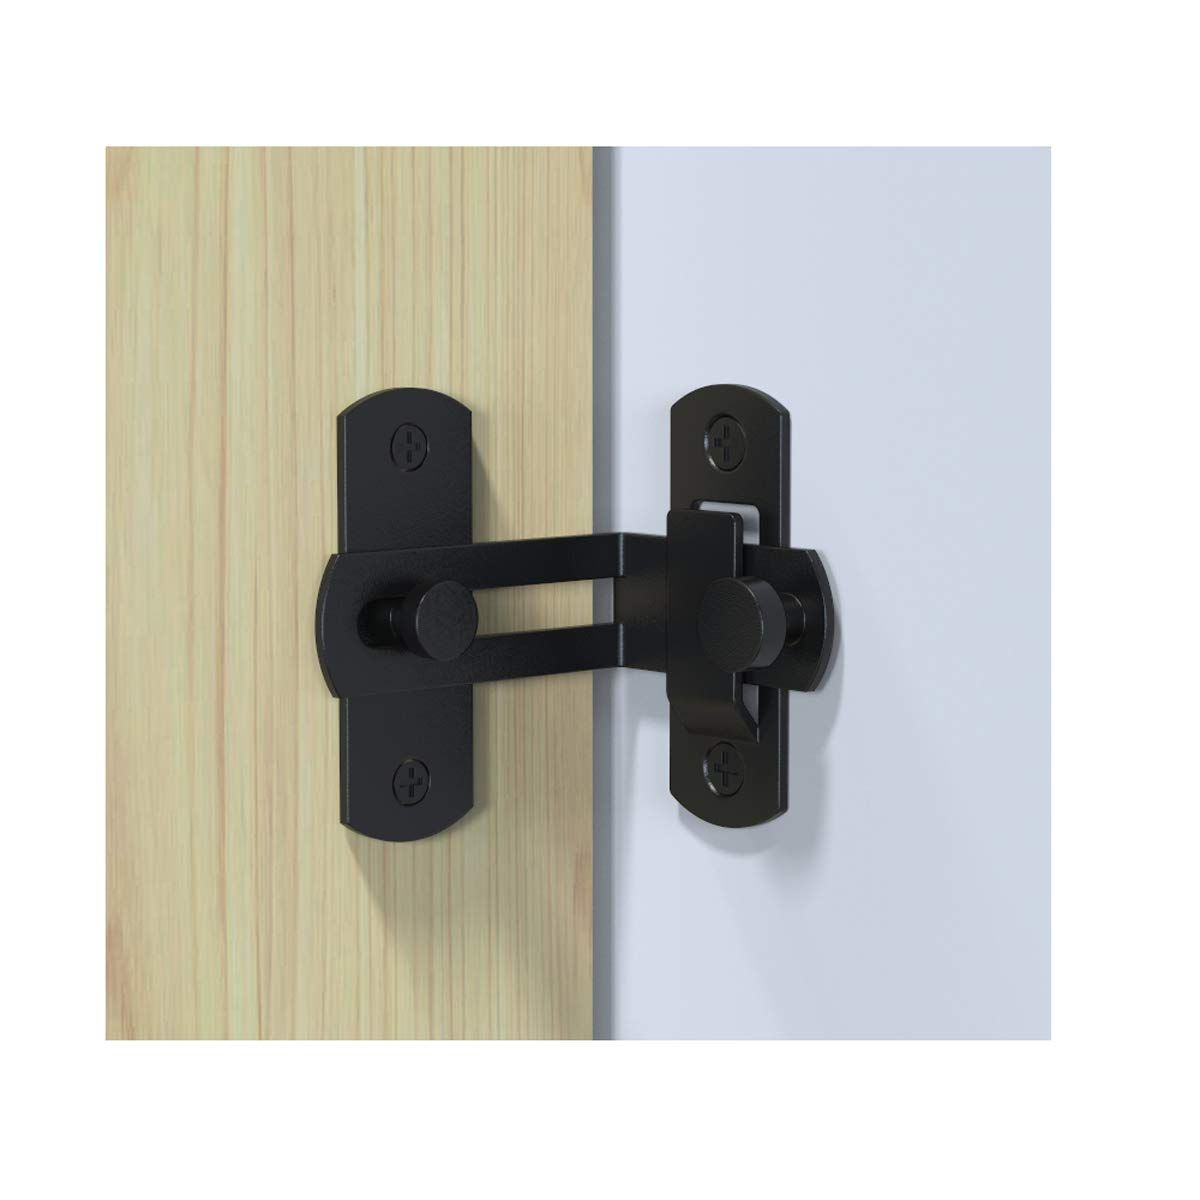 2 Pcs 90 Degree Right Angle Door Latch Hasp Bending Latch Buckle Bolt Sliding Lock Barrel Bolt With Screws For Doors And Windows Door Latch Bolt Lock Latches